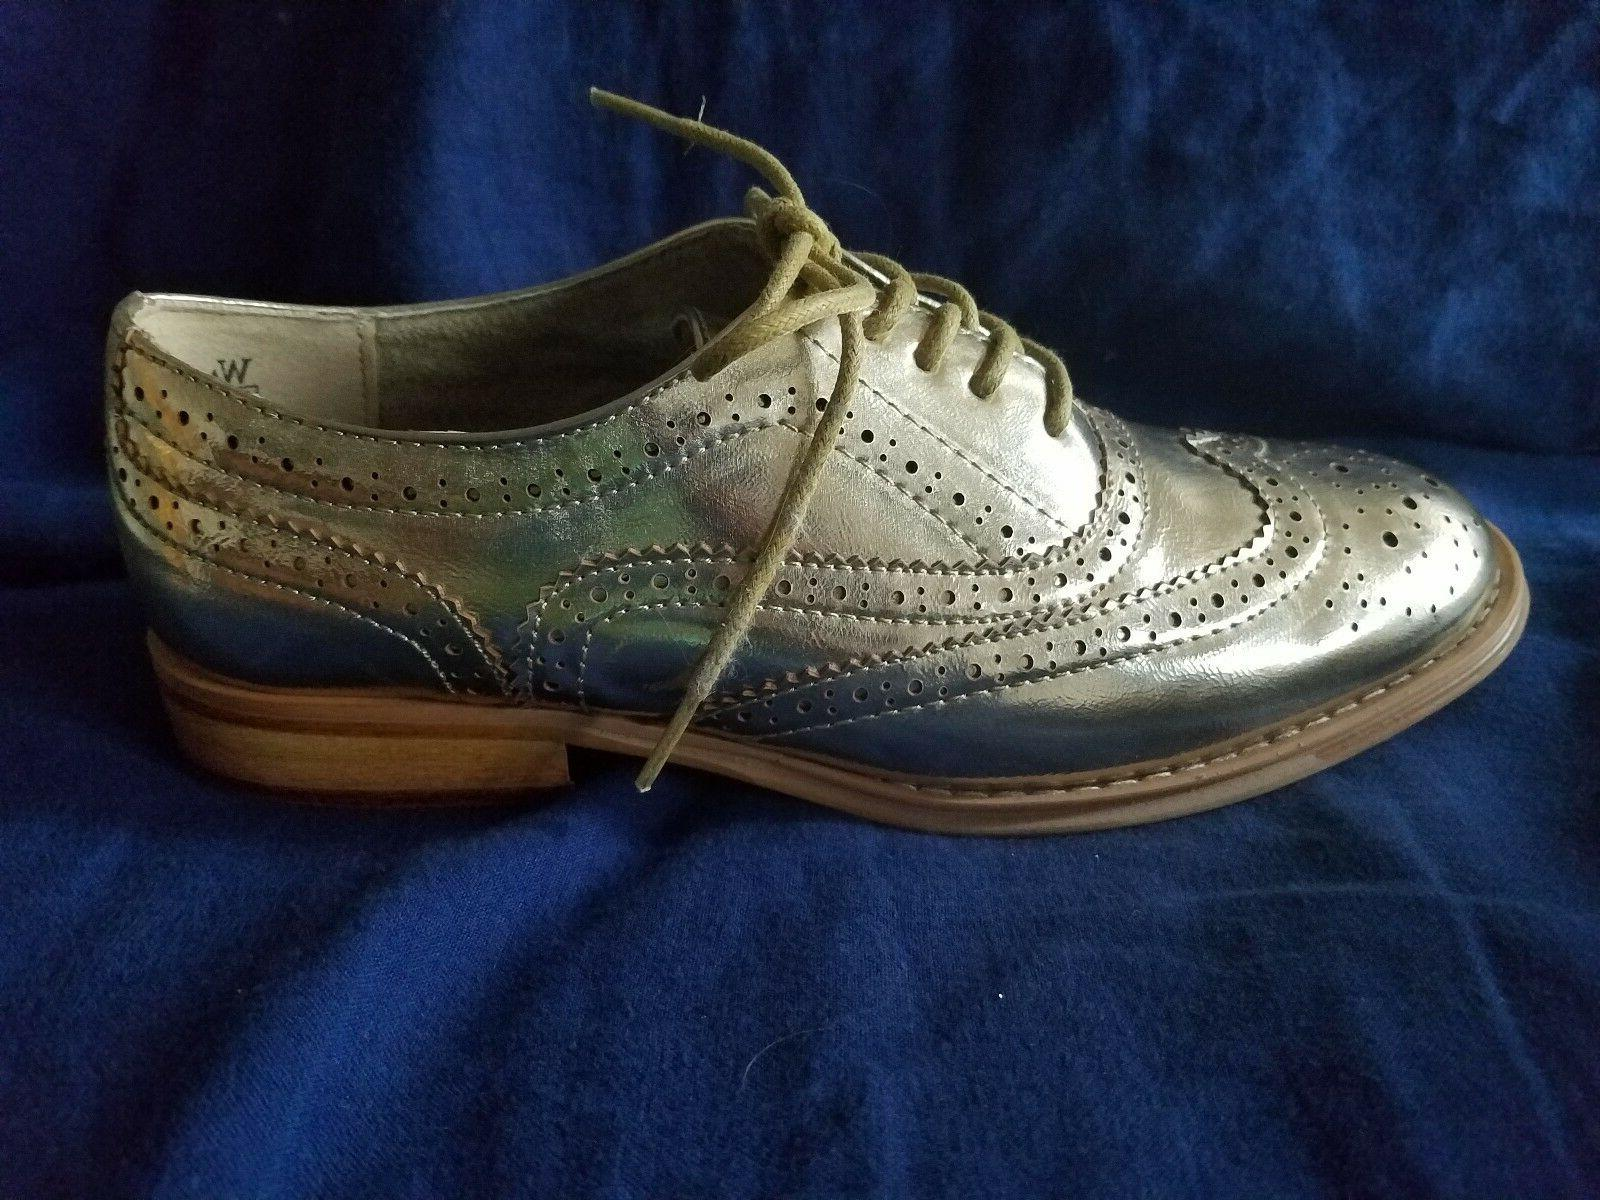 Ladies Wingtips Oxford Shoes by 6.5M